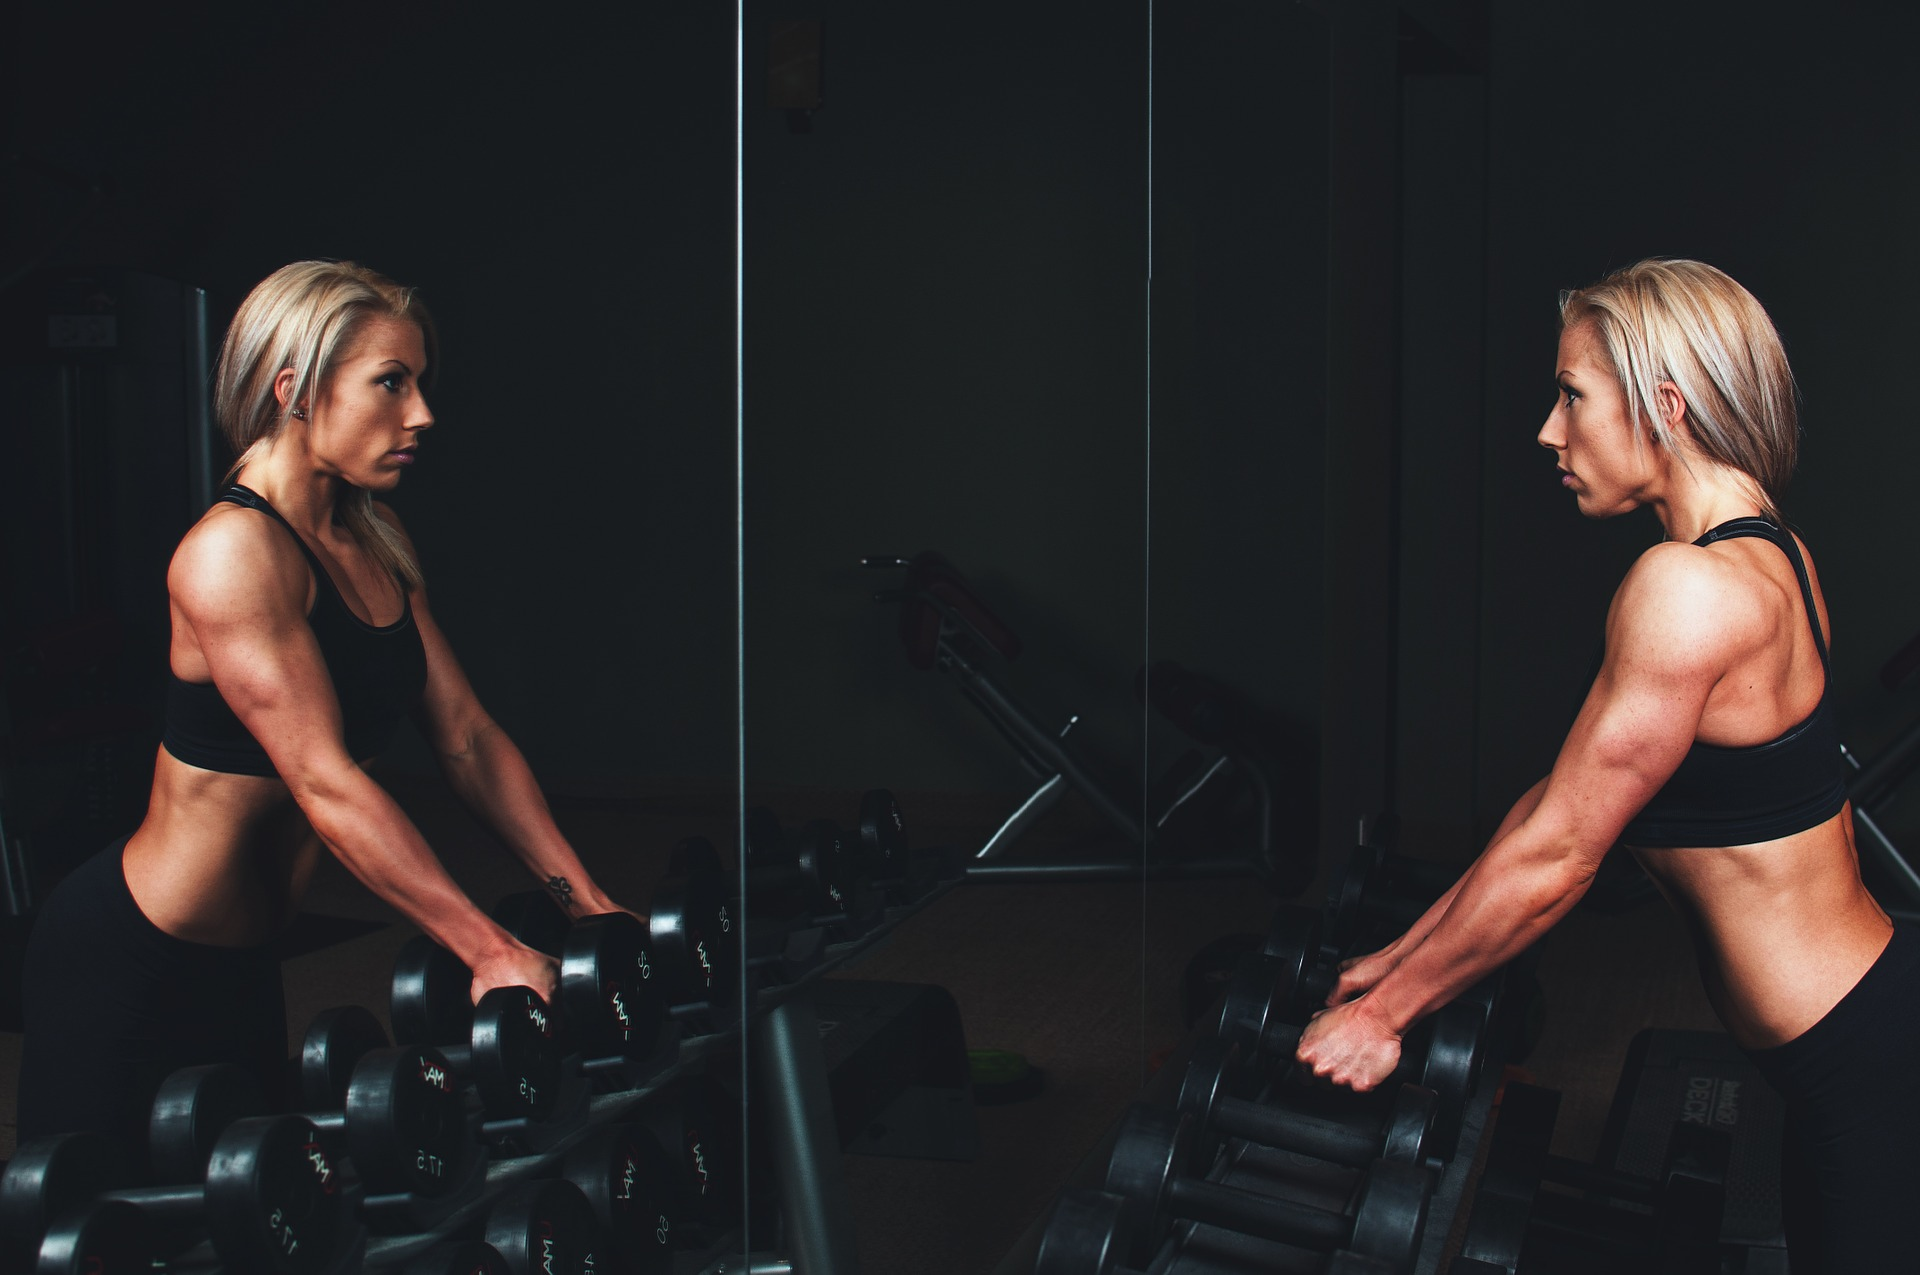 Lady in black working out in a gym